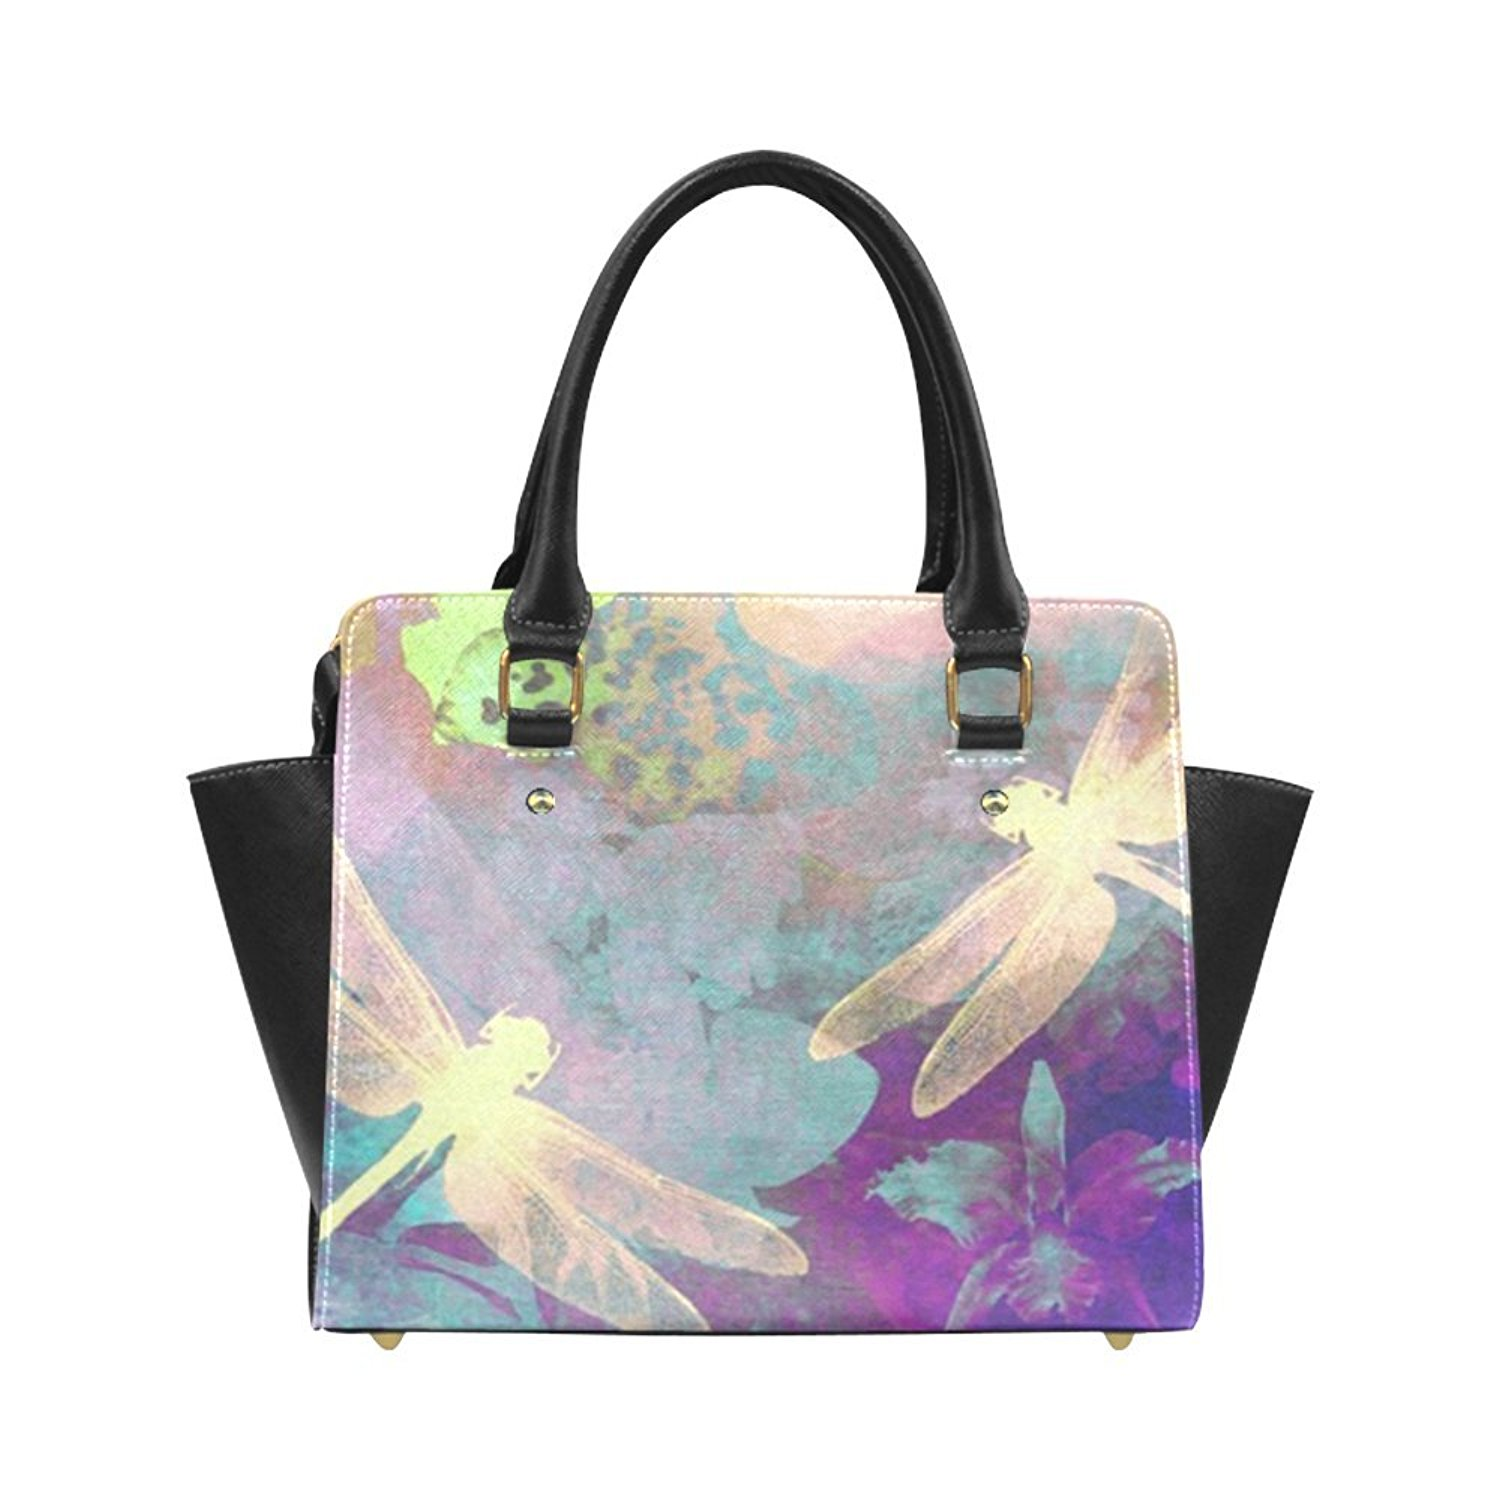 be5c9c554e Get Quotations · Angelinana Dragonflies and Orchids Tapestry Custom Handbag  Fashion Shoulder Bag PU leather Women s Handbags